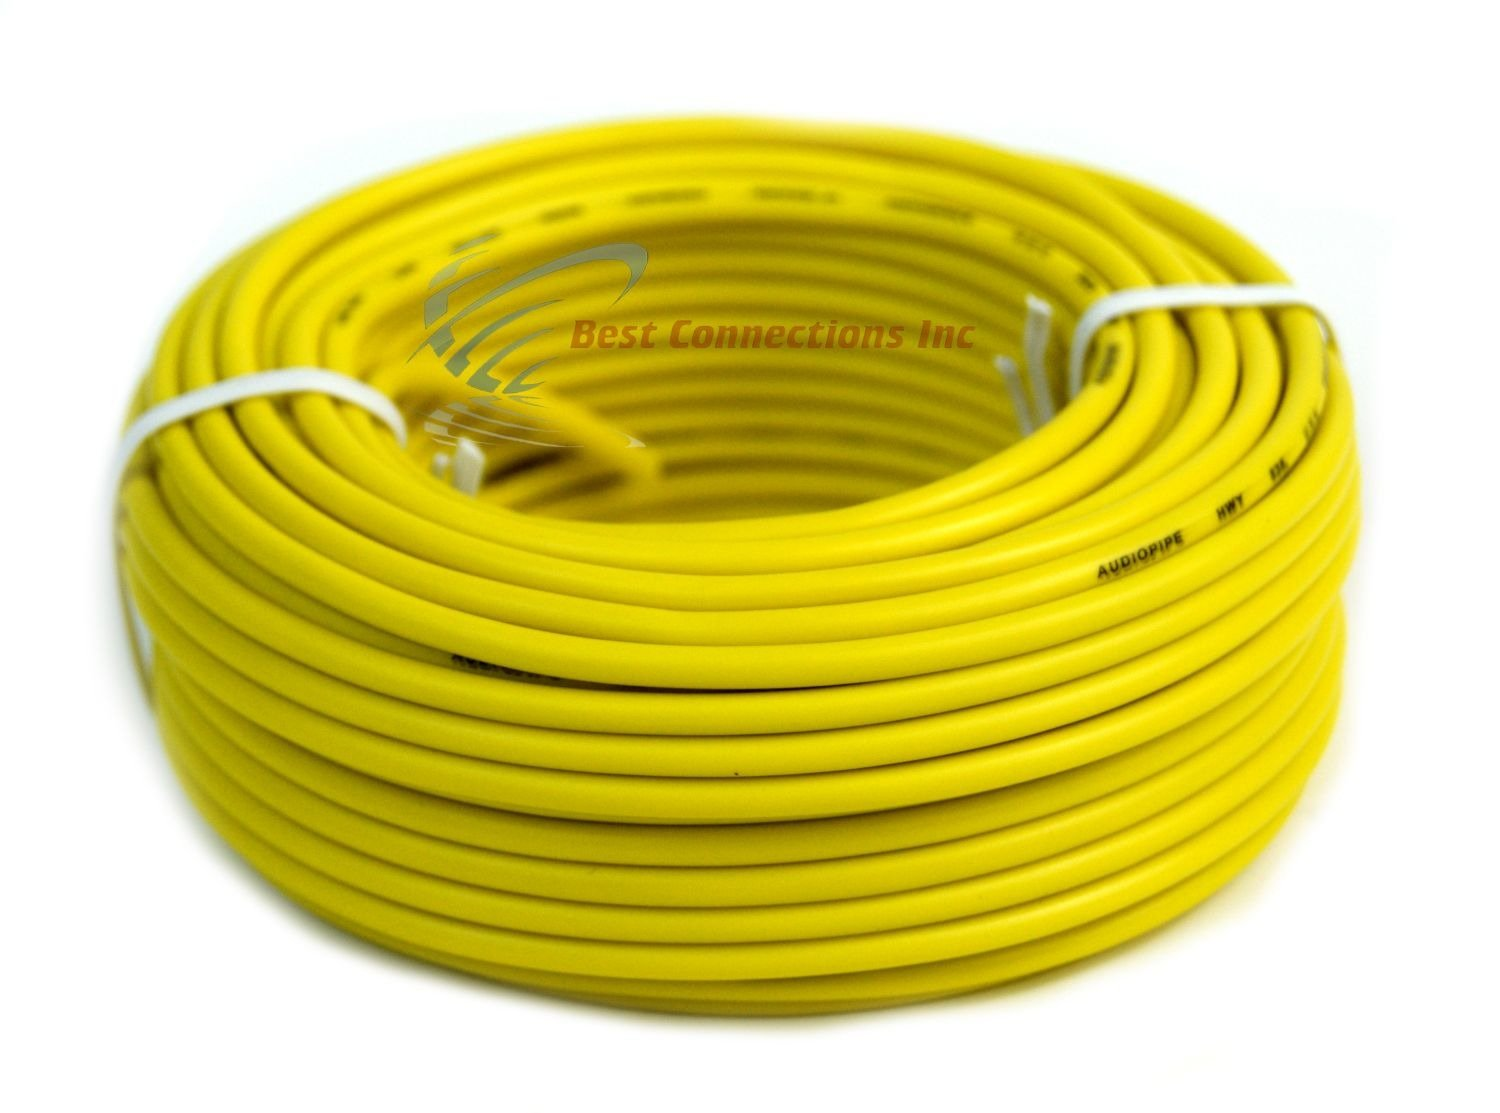 16 Gauge 50'FT Remote Wire Copper Clad Single Conductor 6 Primary Colors by Best Connections (Image #7)